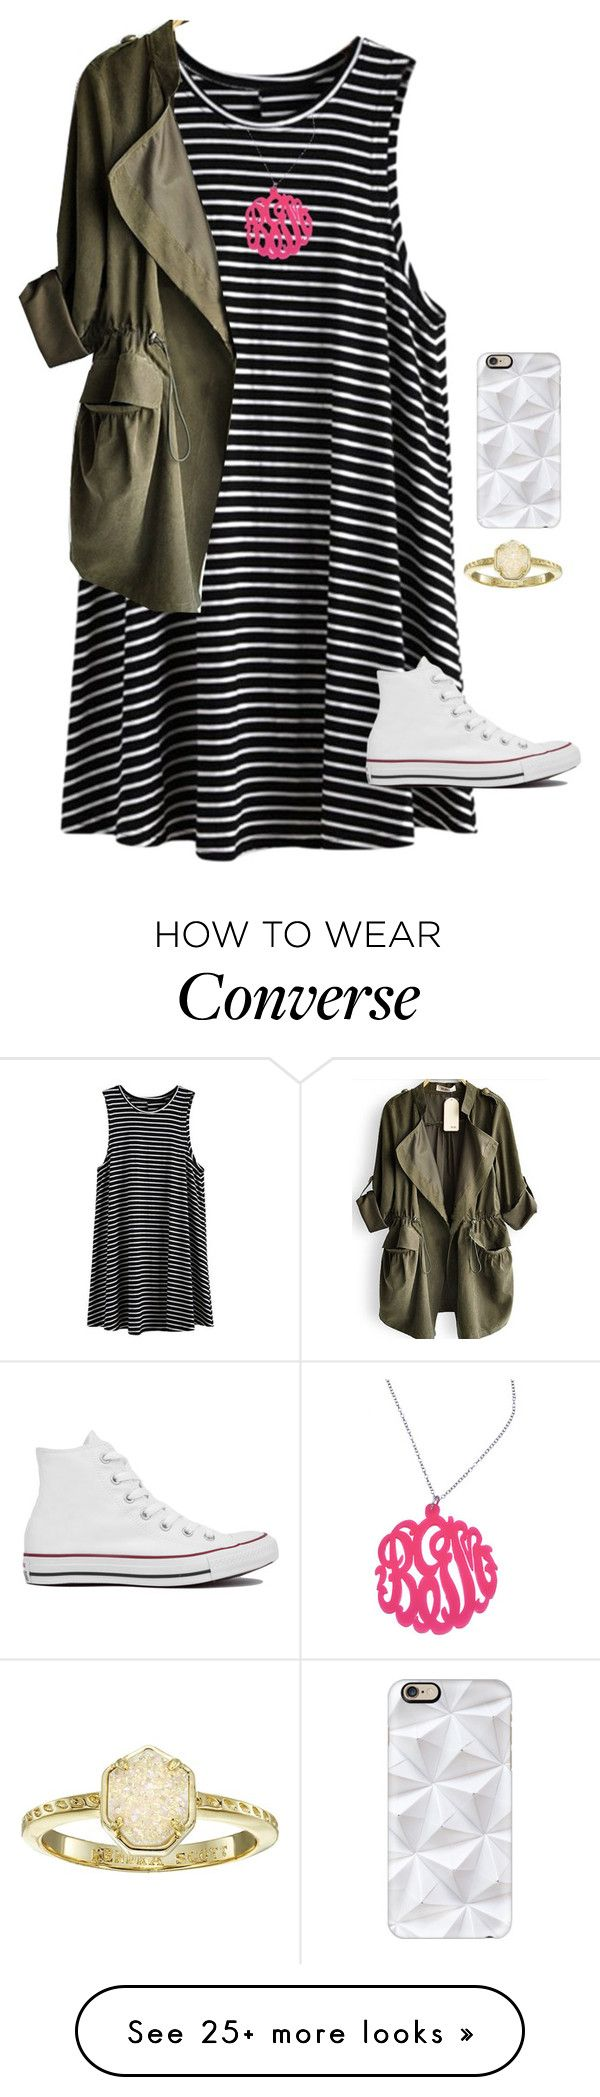 """I like this set"" by avaodom on Polyvore featuring Casetify, Converse, Initial Reaction and Kendra Scott"